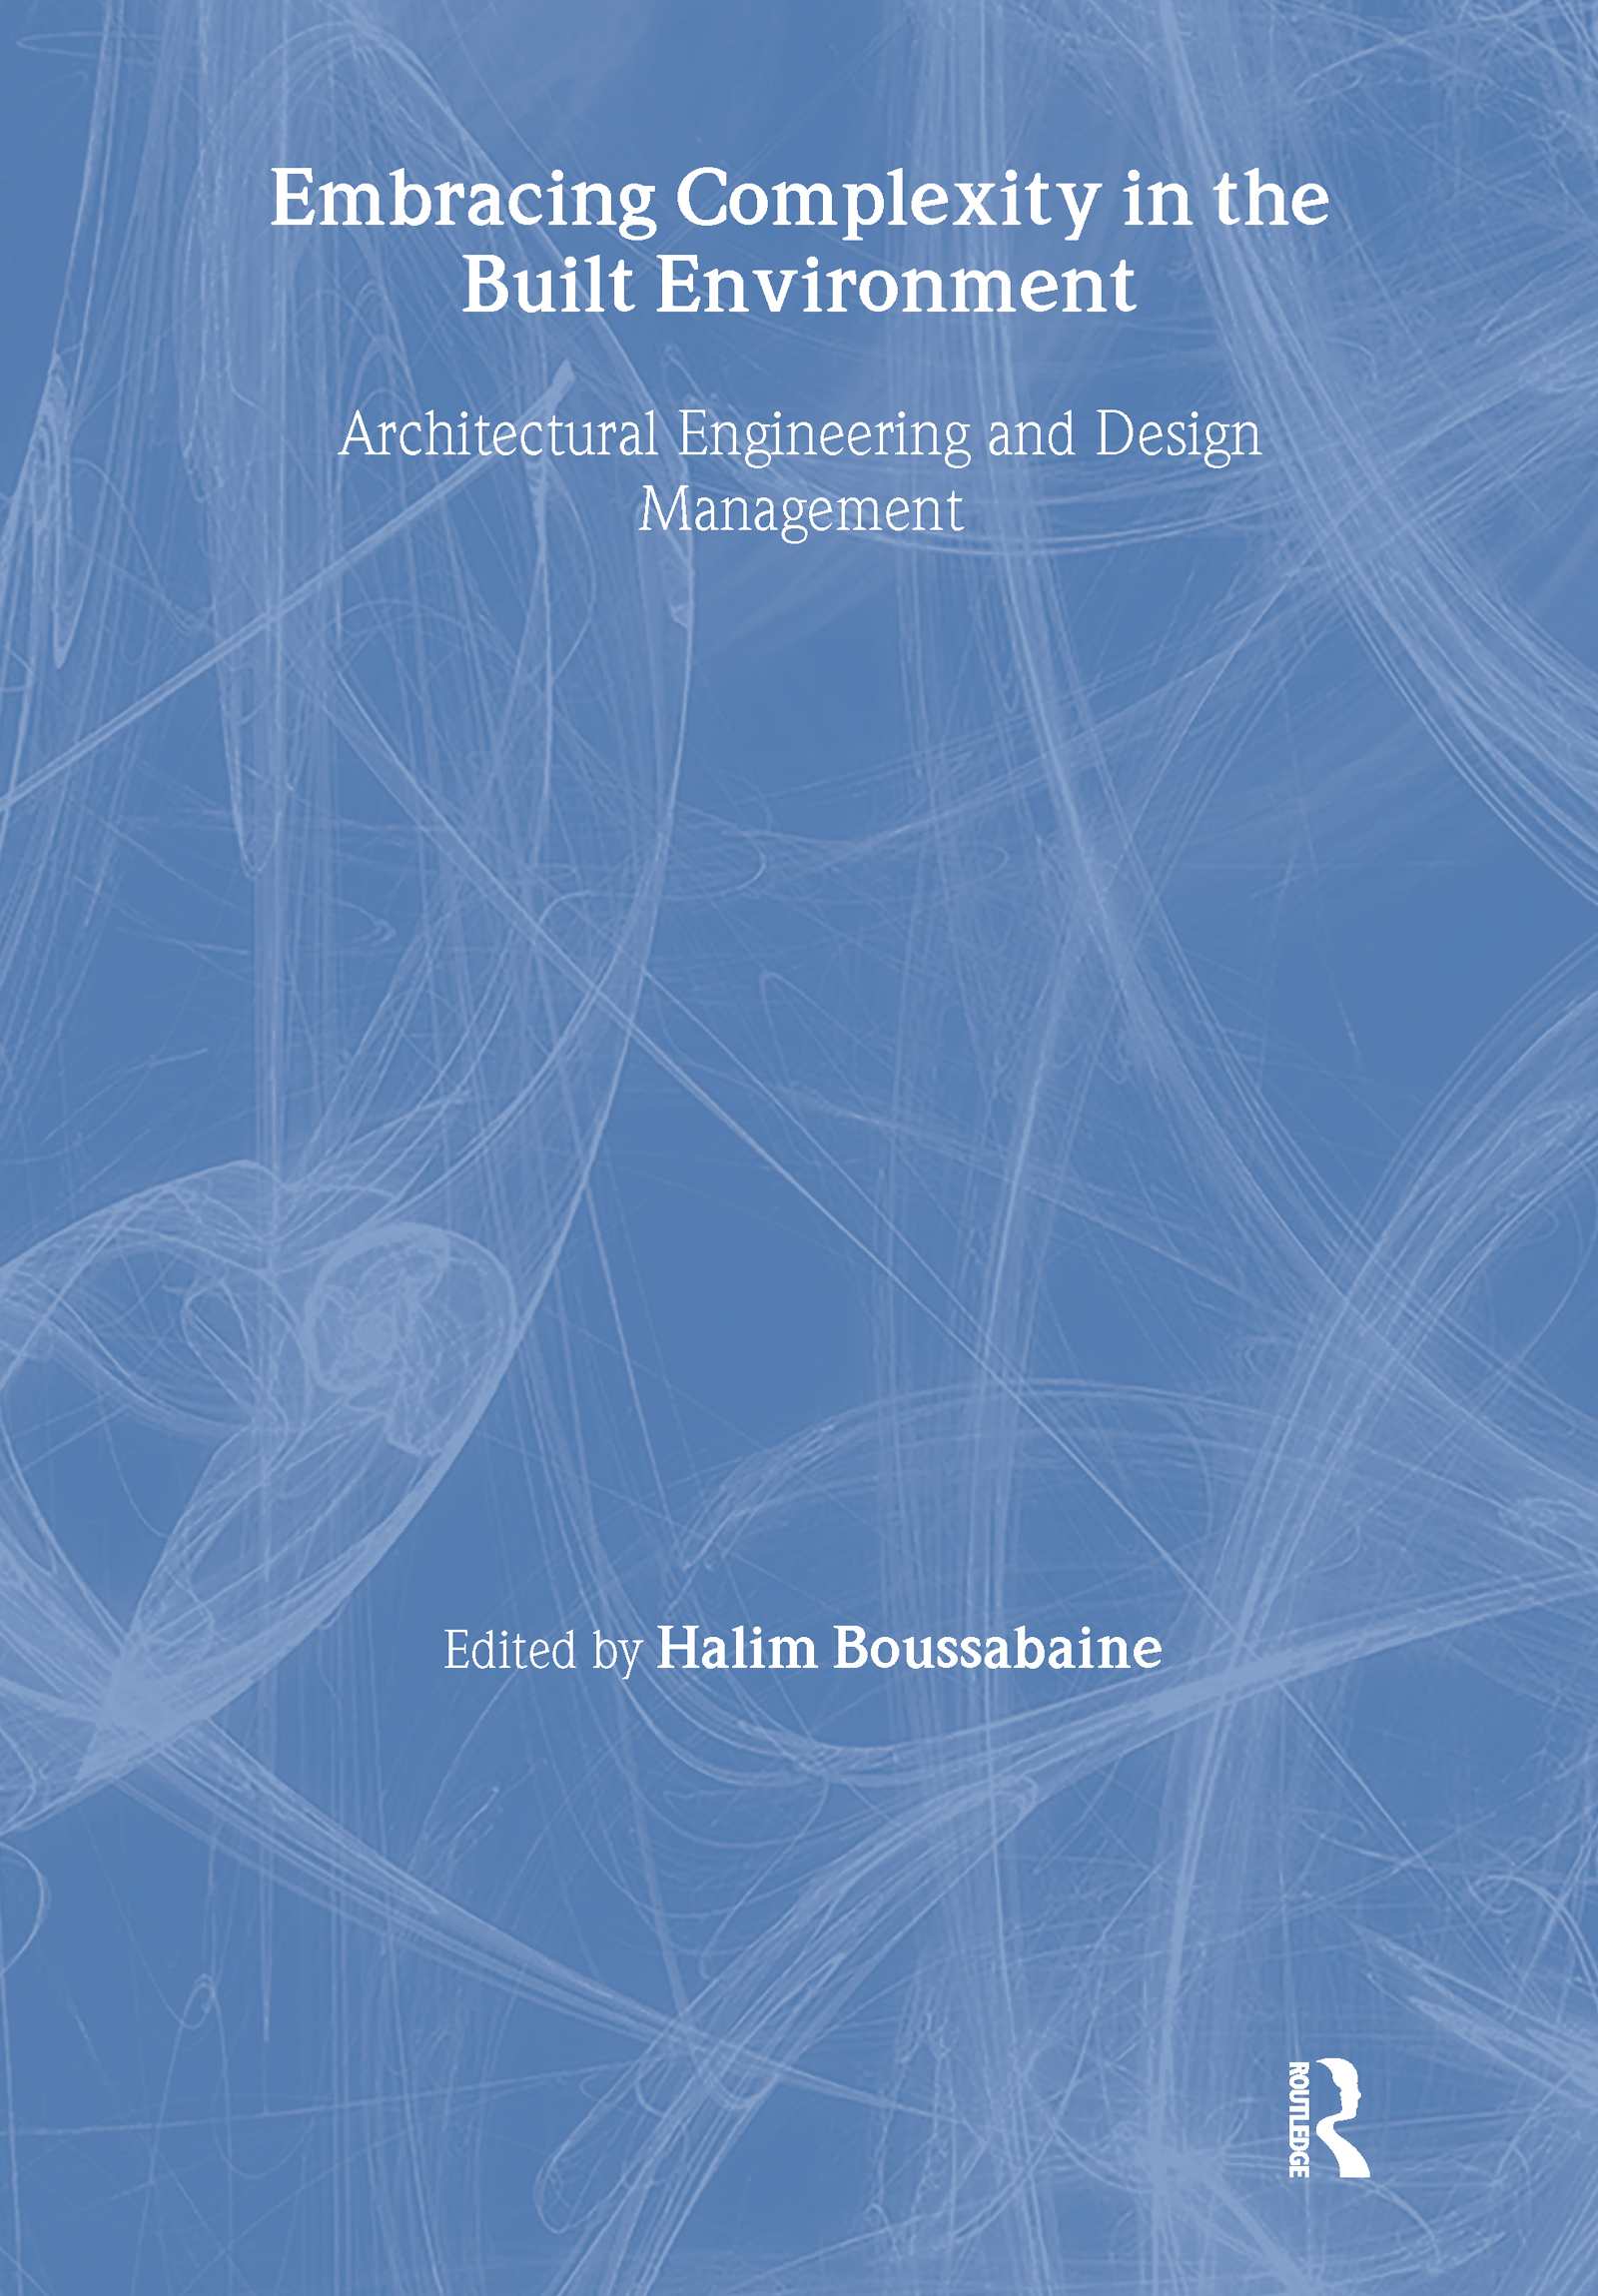 Embracing Complexity in the Built Environment: 1st Edition (Paperback) book cover